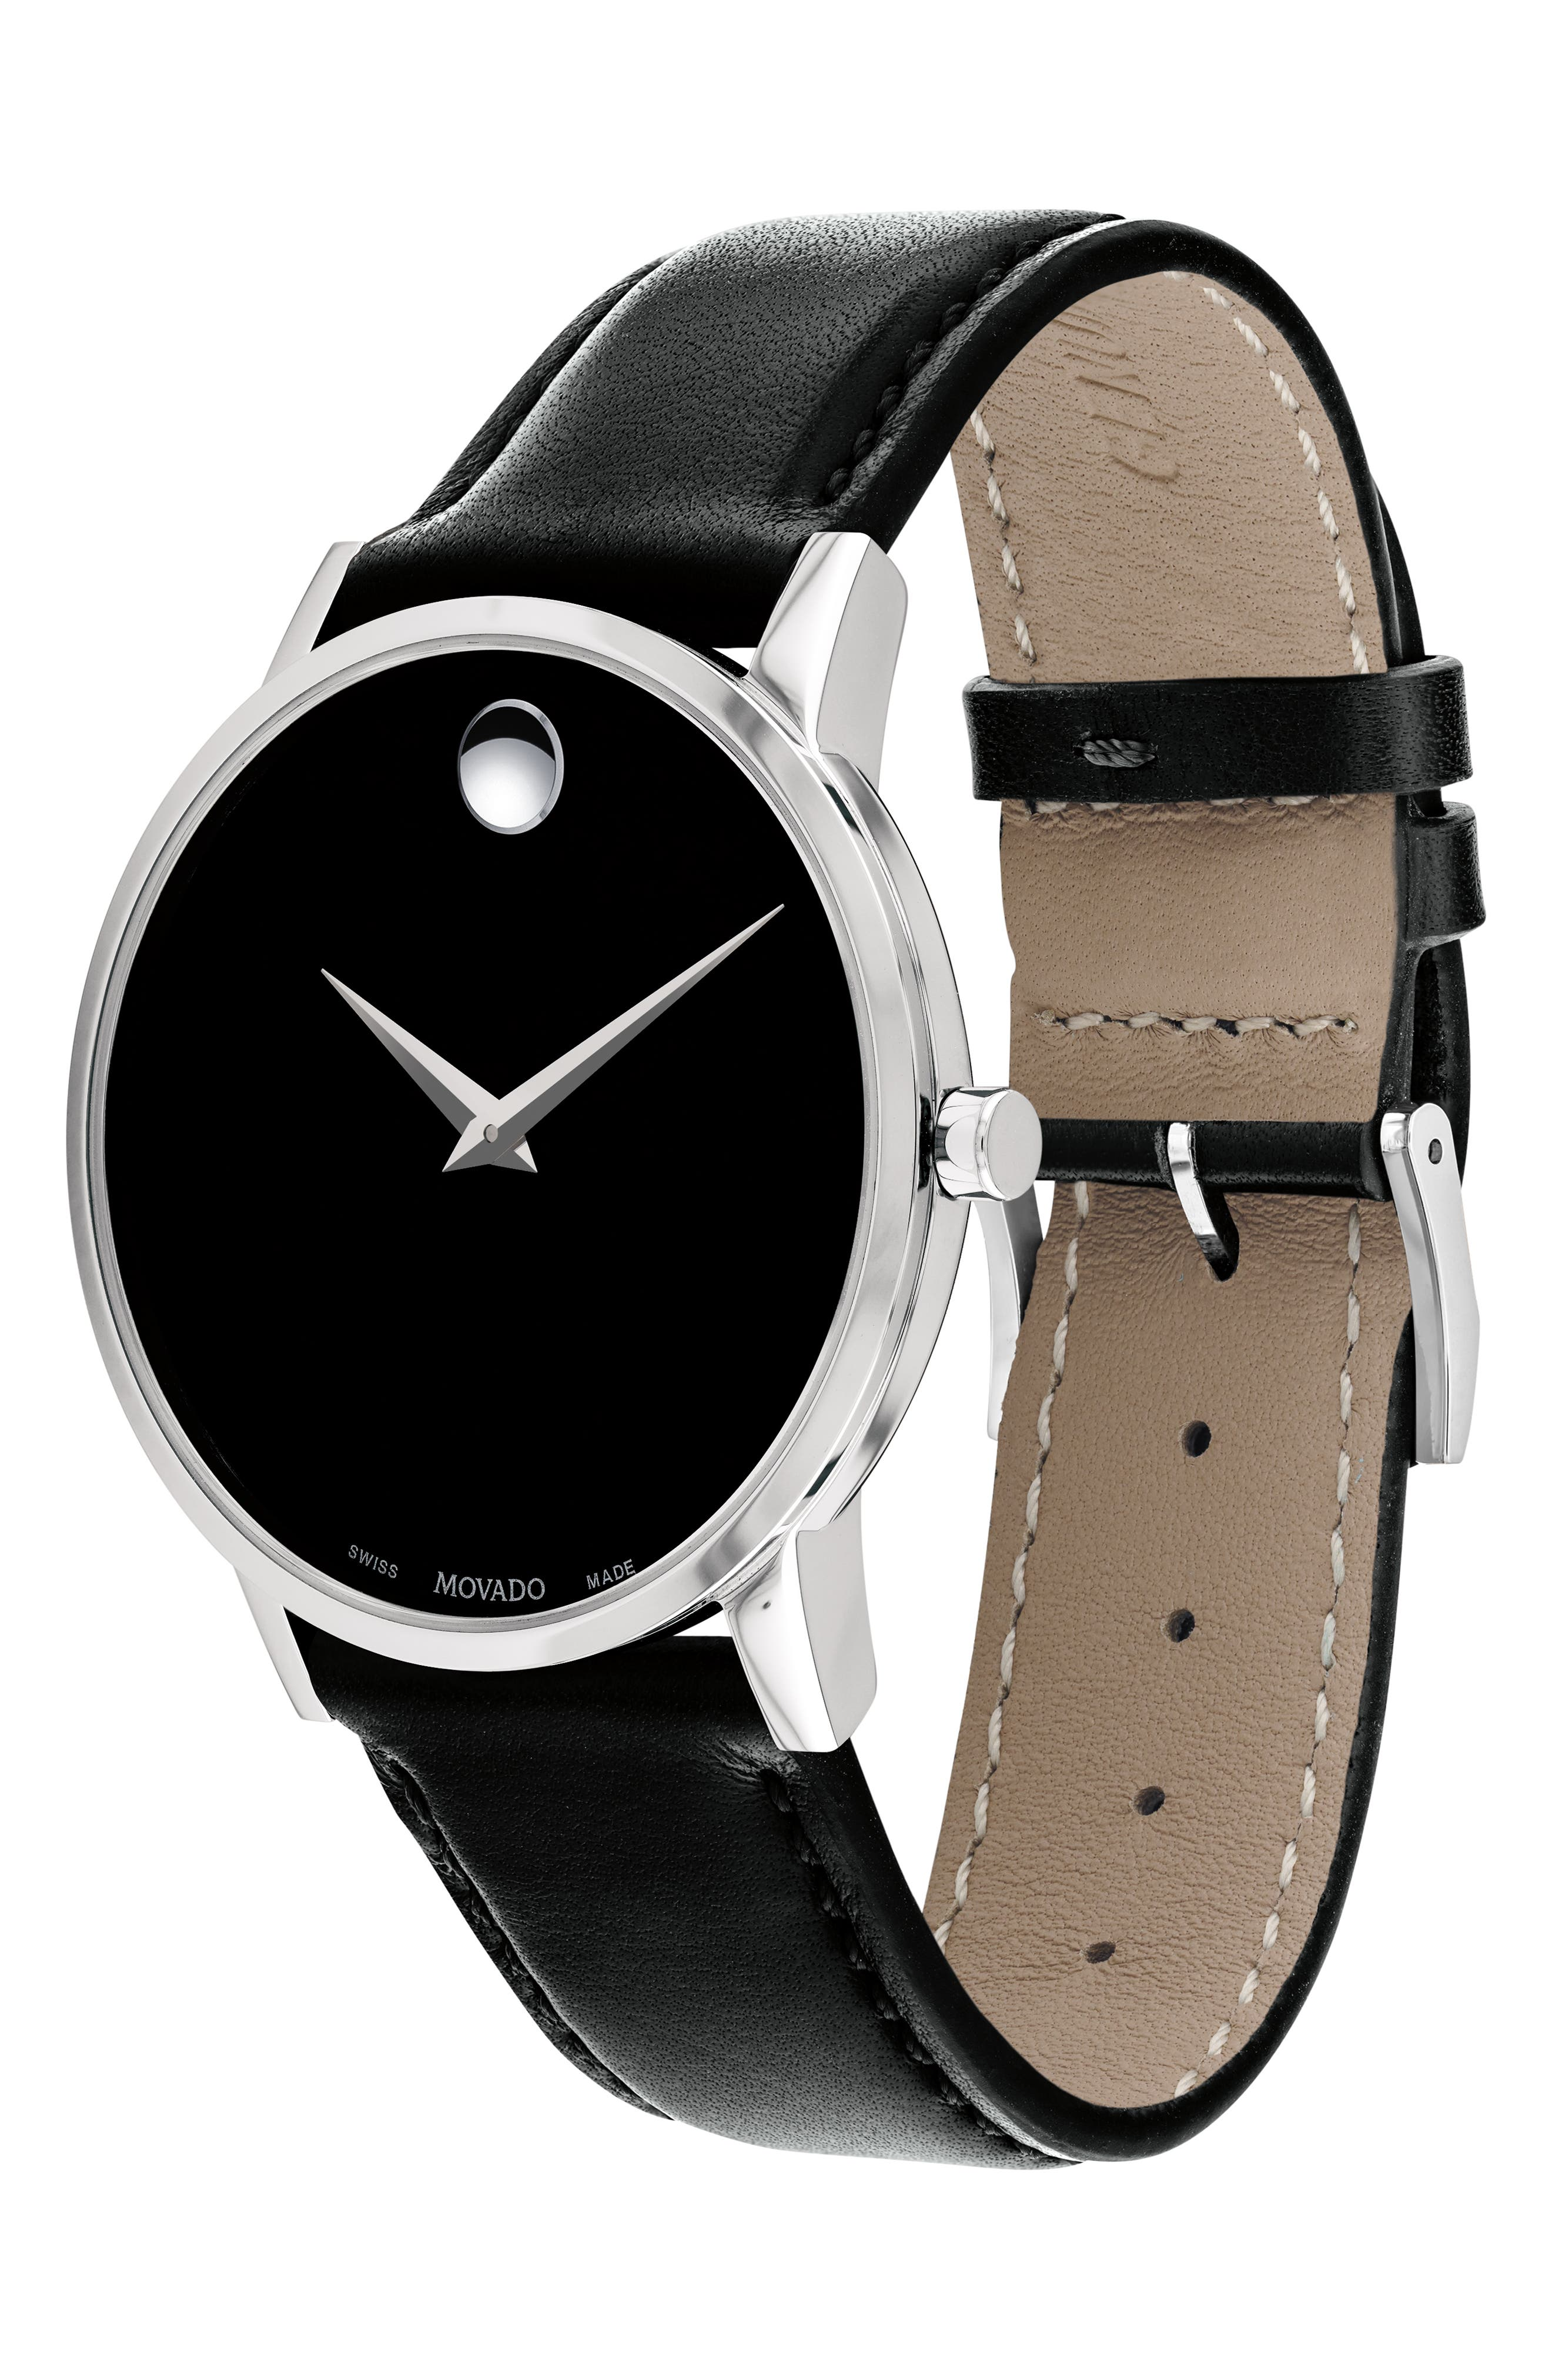 MOVADO, Leather Strap Watch, 40mm, Alternate thumbnail 2, color, BLACK/ SILVER